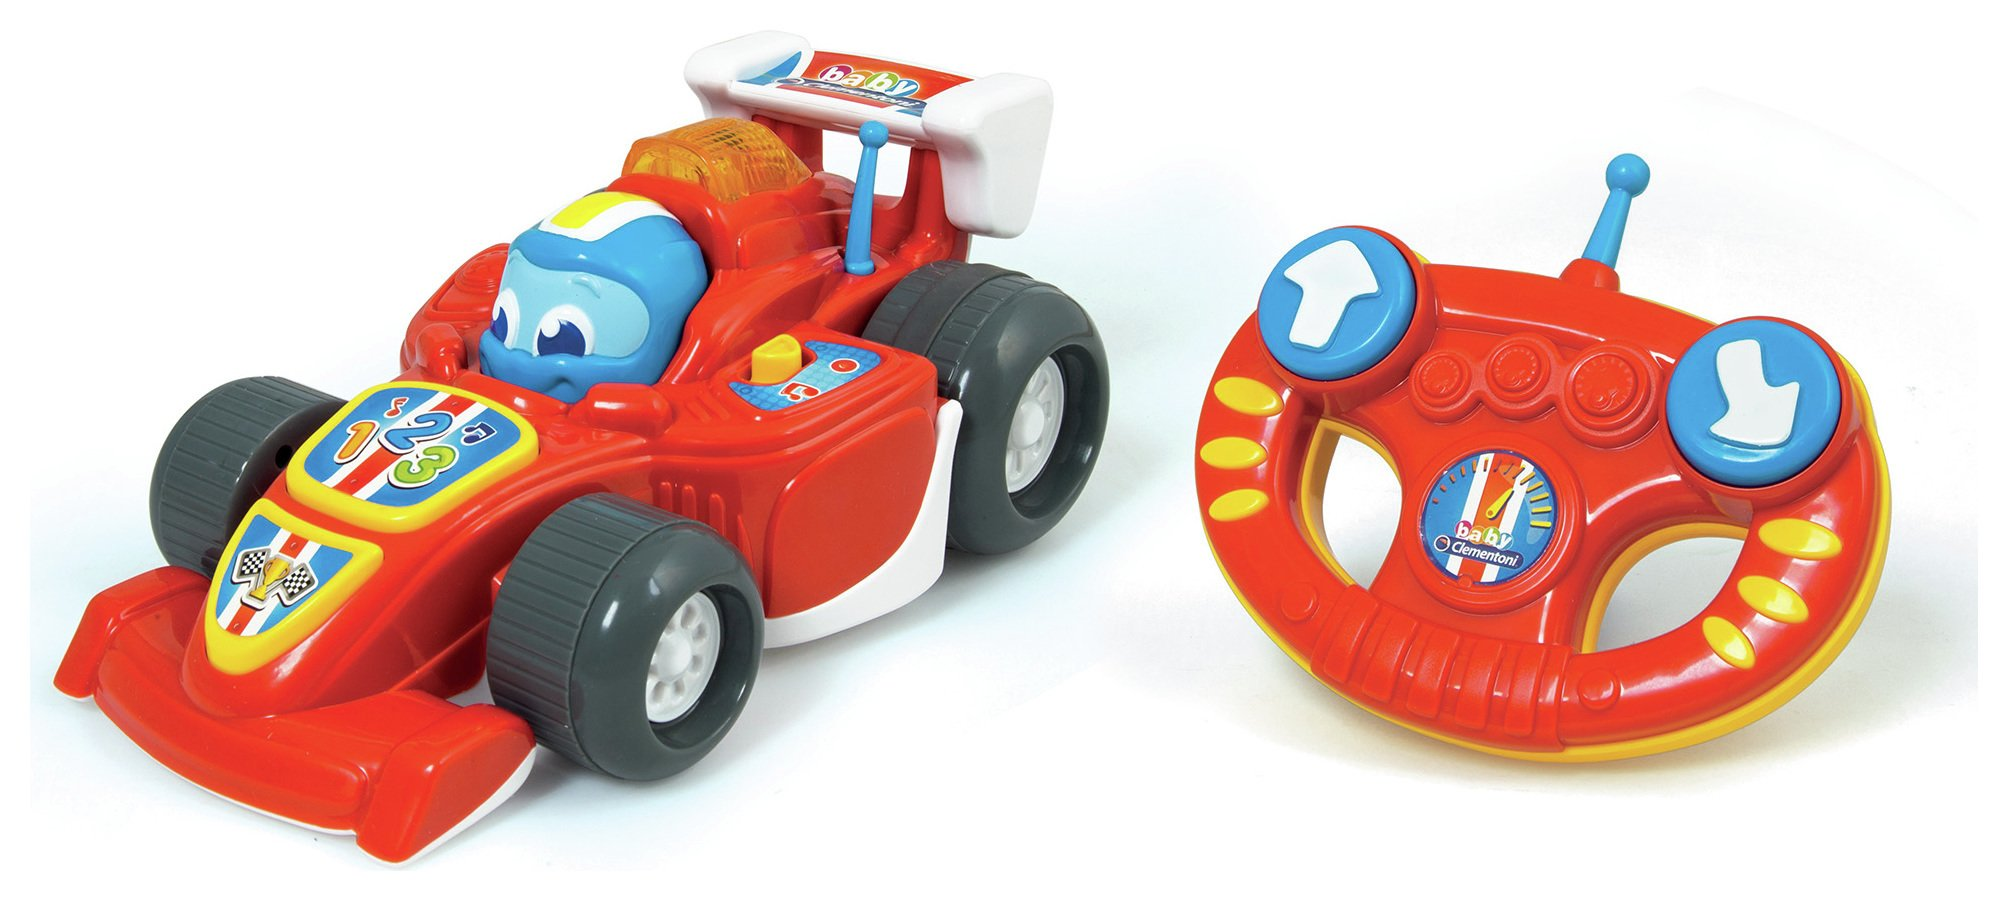 Image of Baby Clementoni Lewis Infrared Remote Control Car.